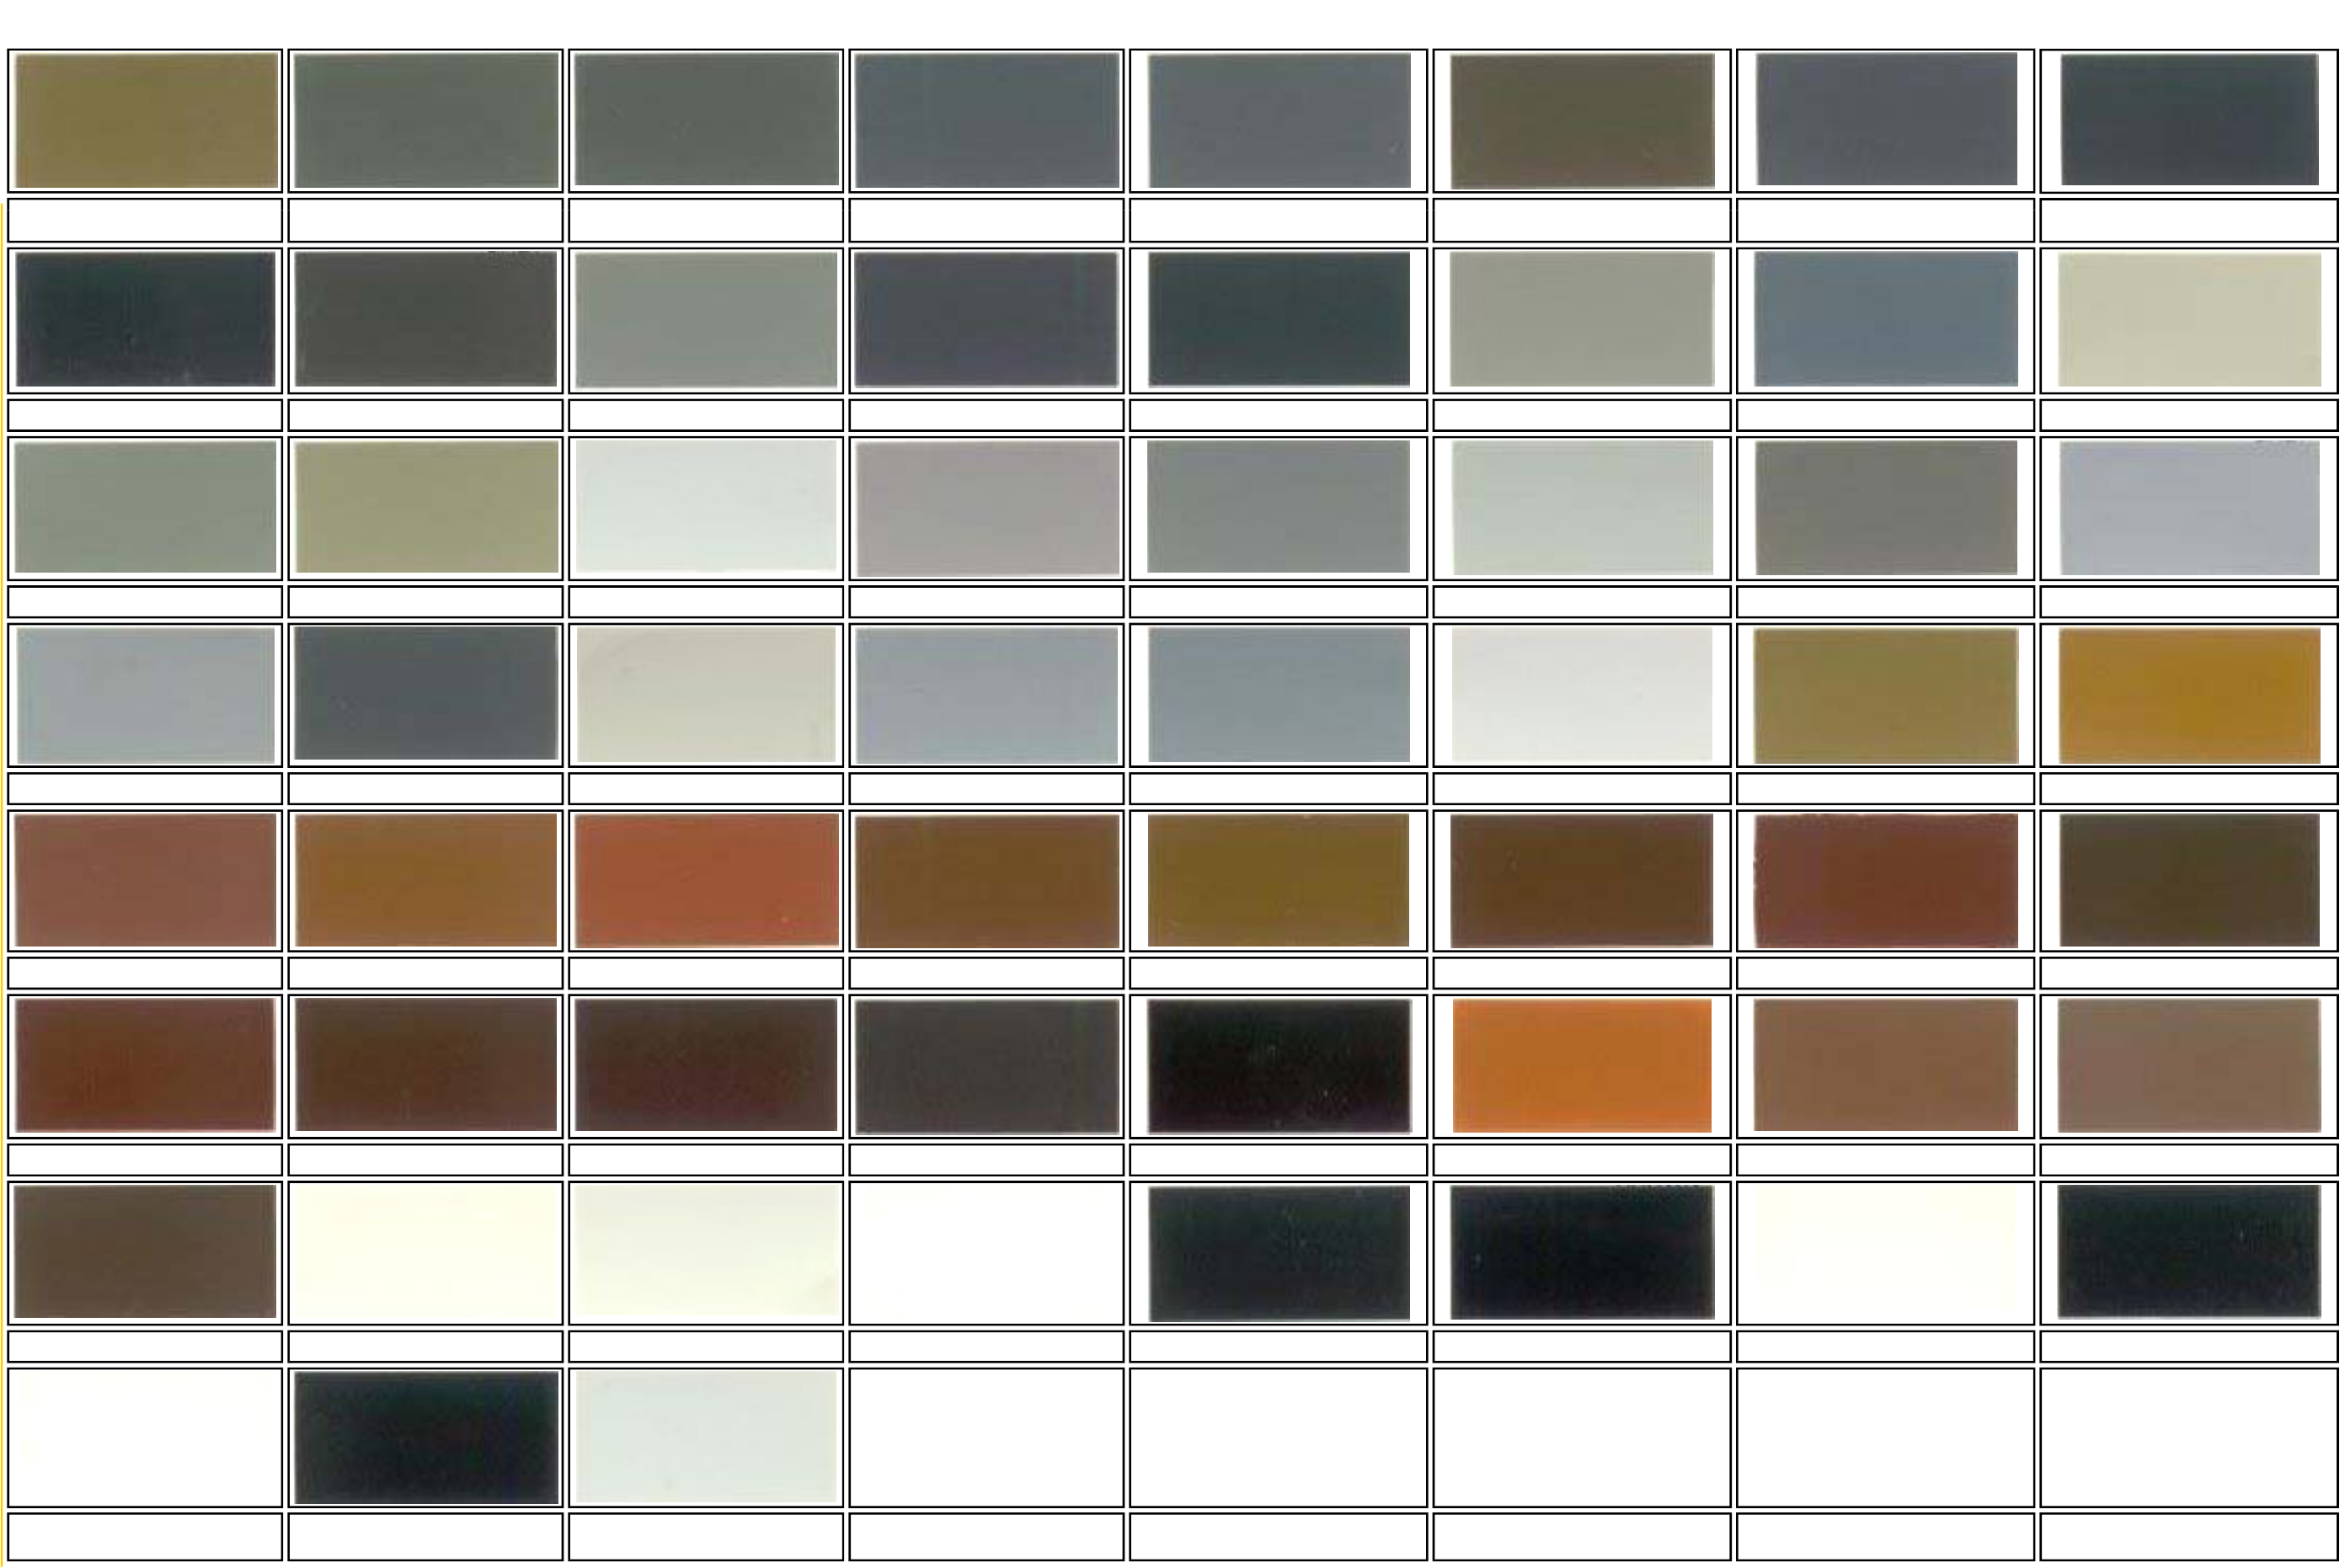 Concise Ral Color Chart Free Download